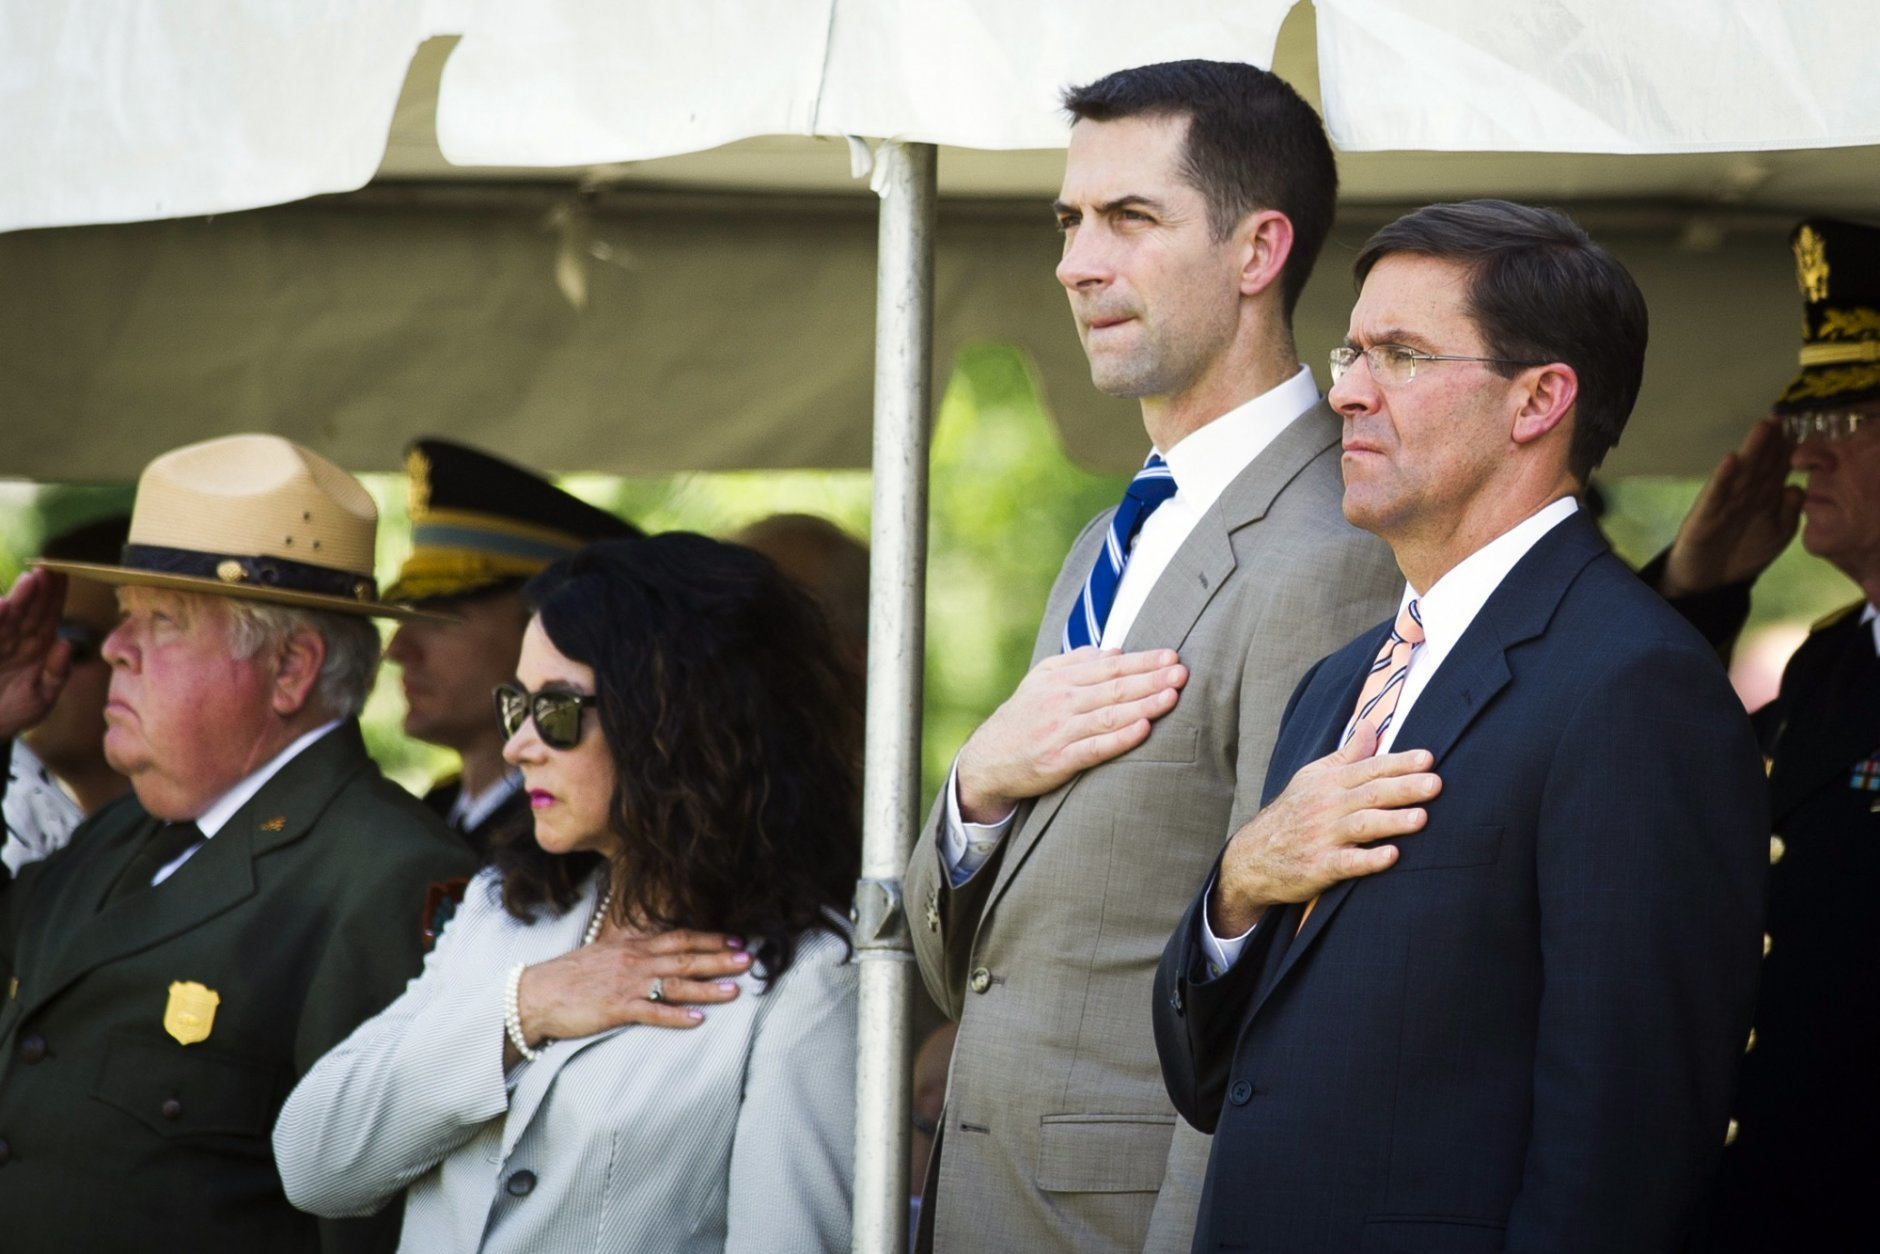 In this Sept. 6, 2018 photo, P. Daniel Smith; deputy director, National Park Service, left, Karen Durham-Aquilere; executive director, Army National Military Cemeteries, second from left, and Mark Esper, Secretary of the Army, right, participate in a military funeral with honors for two Civil War Union soldiers at their grave at Arlington National Cemetery in Arlington, Va. The U.S. Army is being criticized for reburying the remains of two recently discovered Civil War soldiers without conducting DNA testing. The soldiers were found at Manassas National Battlefield, among severed limbs in what researchers believe was a surgeon's pit. Army officials said DNA testing was unjustified and reburied them as unknown soldiers at Arlington National Cemetery. (AP Photo/Cliff Owen)